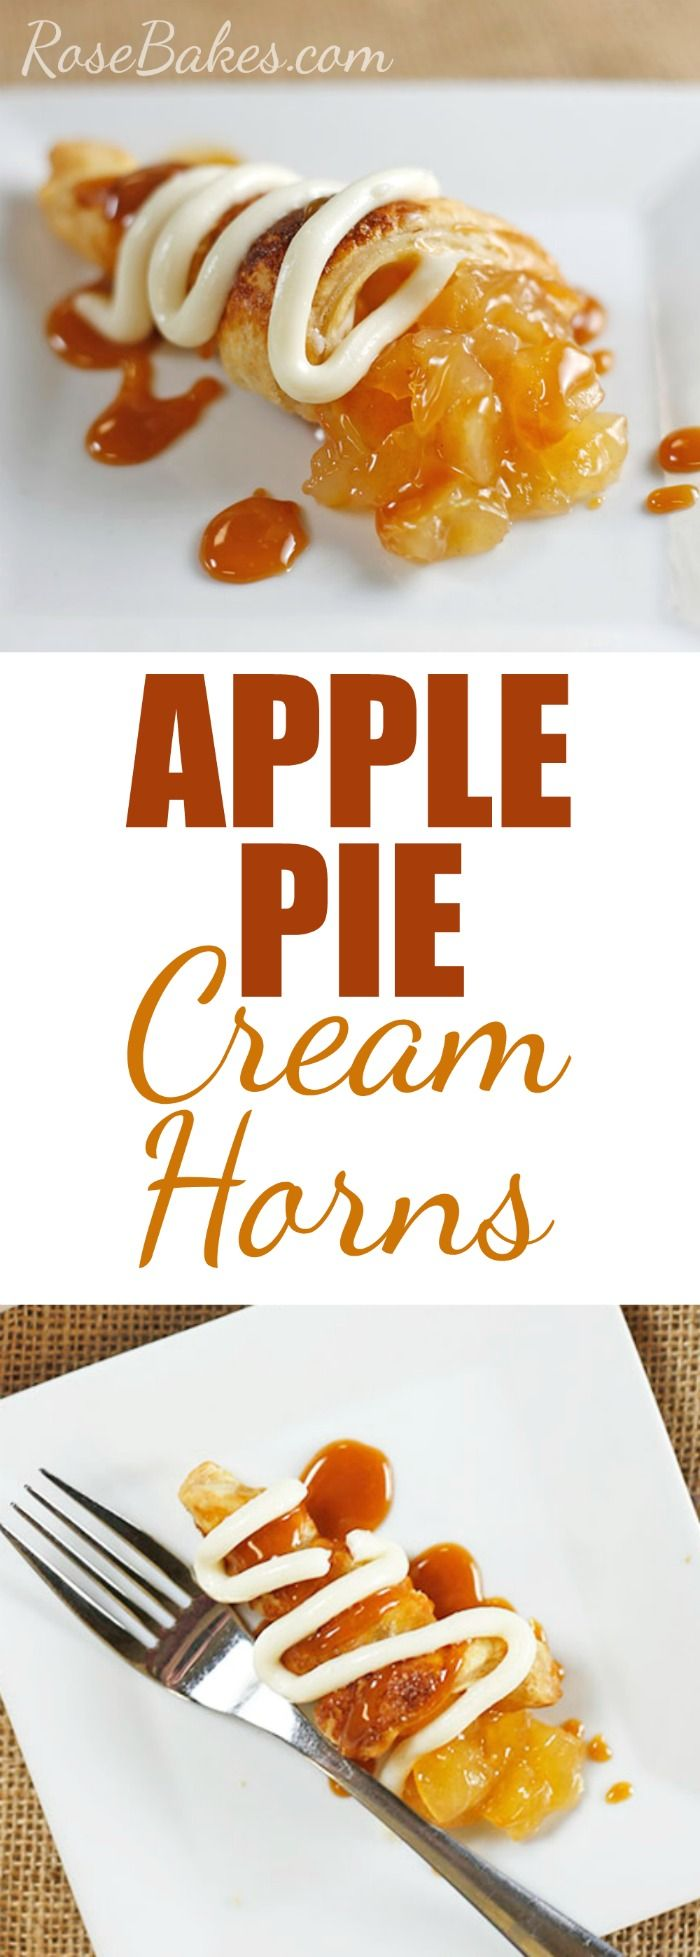 #ad Caramel Apple Pie Cream Horns made with Pepperidge Farms Puff Pastry Sheets. Filled with cream cheese custard & apple pie filling - topped with caramel! #InspiredByPuff